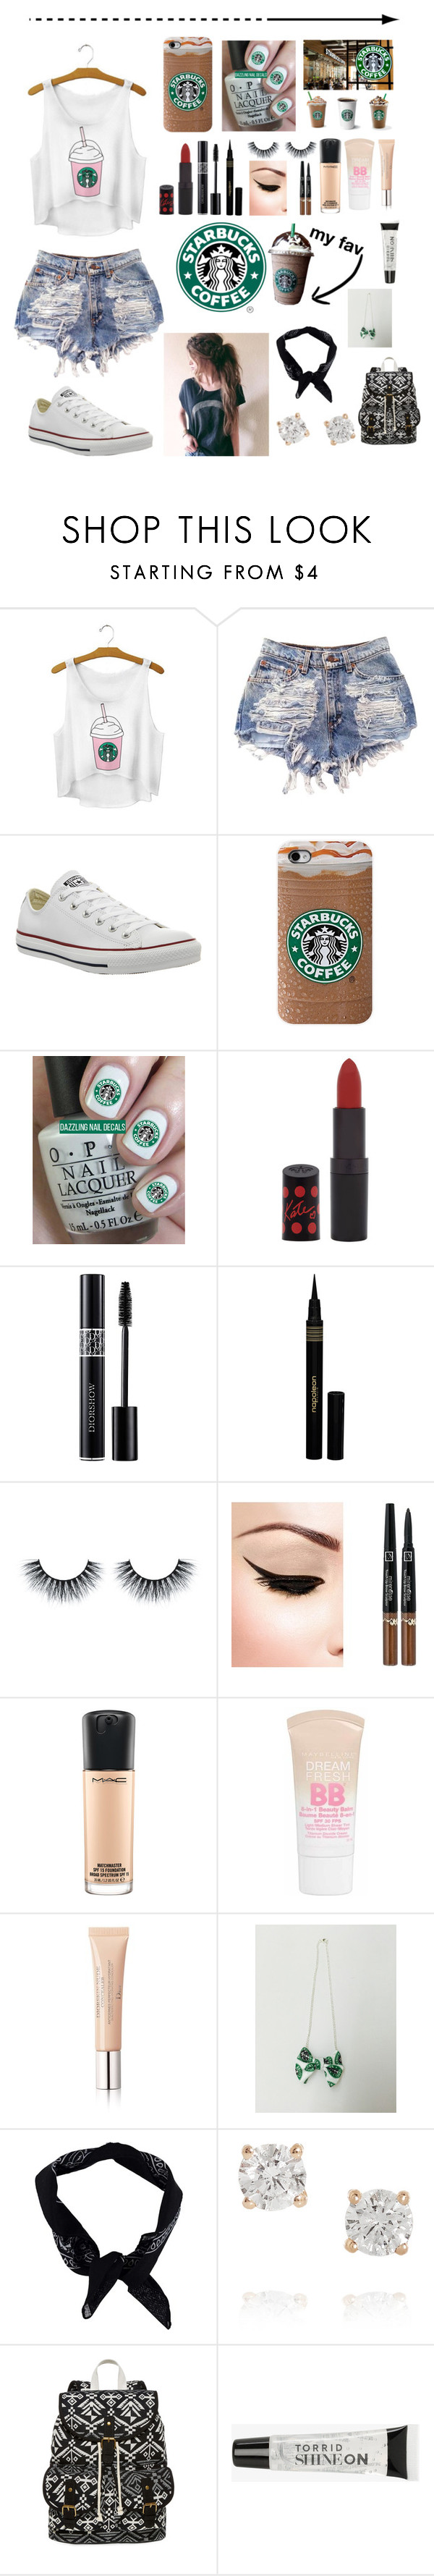 """repost dk y just felt like it"" by lilygriffiths44 ❤ liked on Polyvore featuring Converse, Rimmel, Napoleon Perdis, MAC Cosmetics, Maybelline, Boohoo, Anita Ko, SM New York and Torrid"